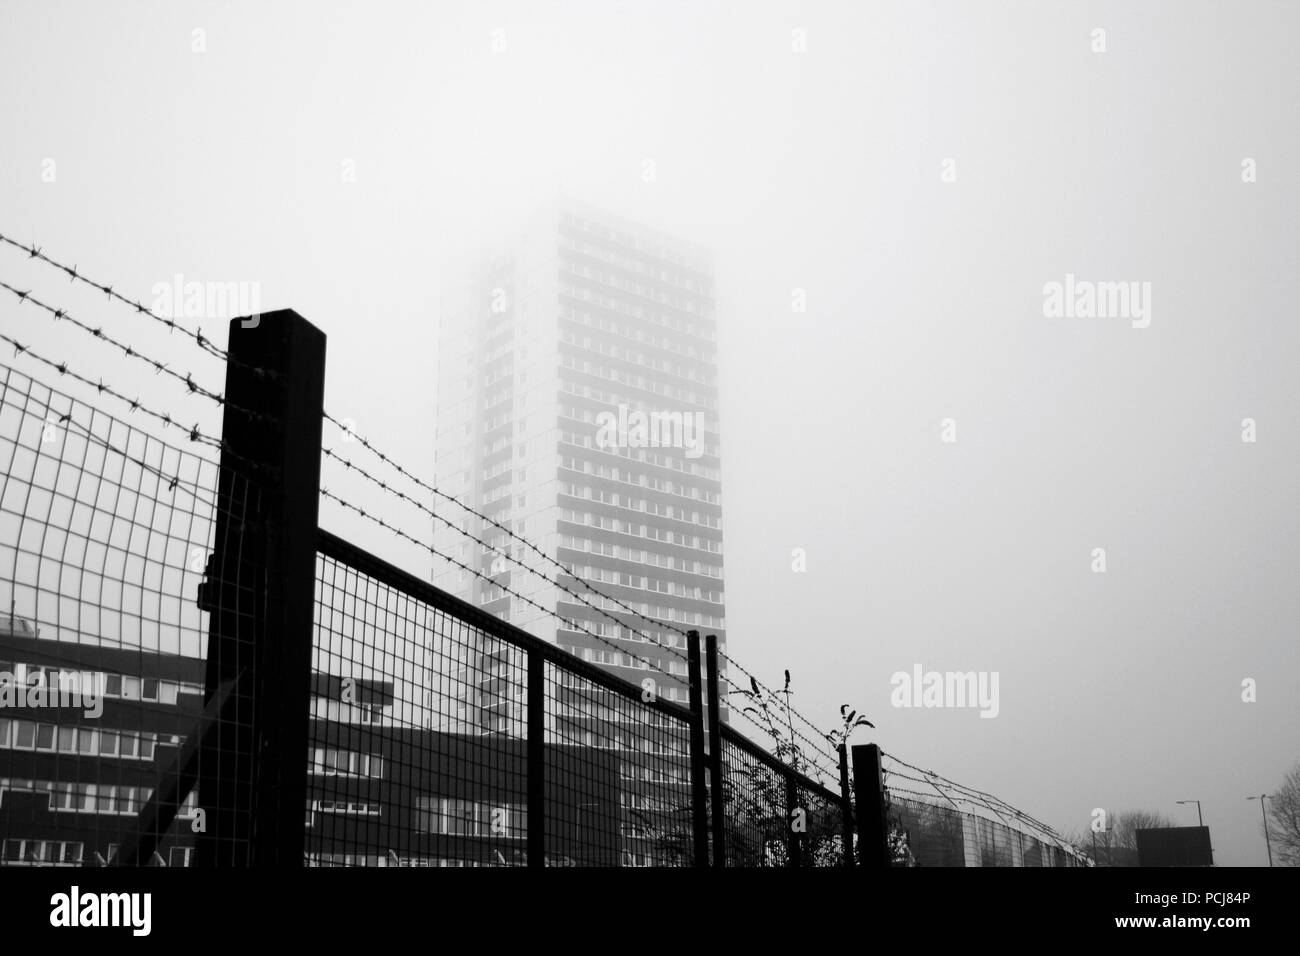 High rise flats disappearing into fog behind a barbed wire fence Stock Photo